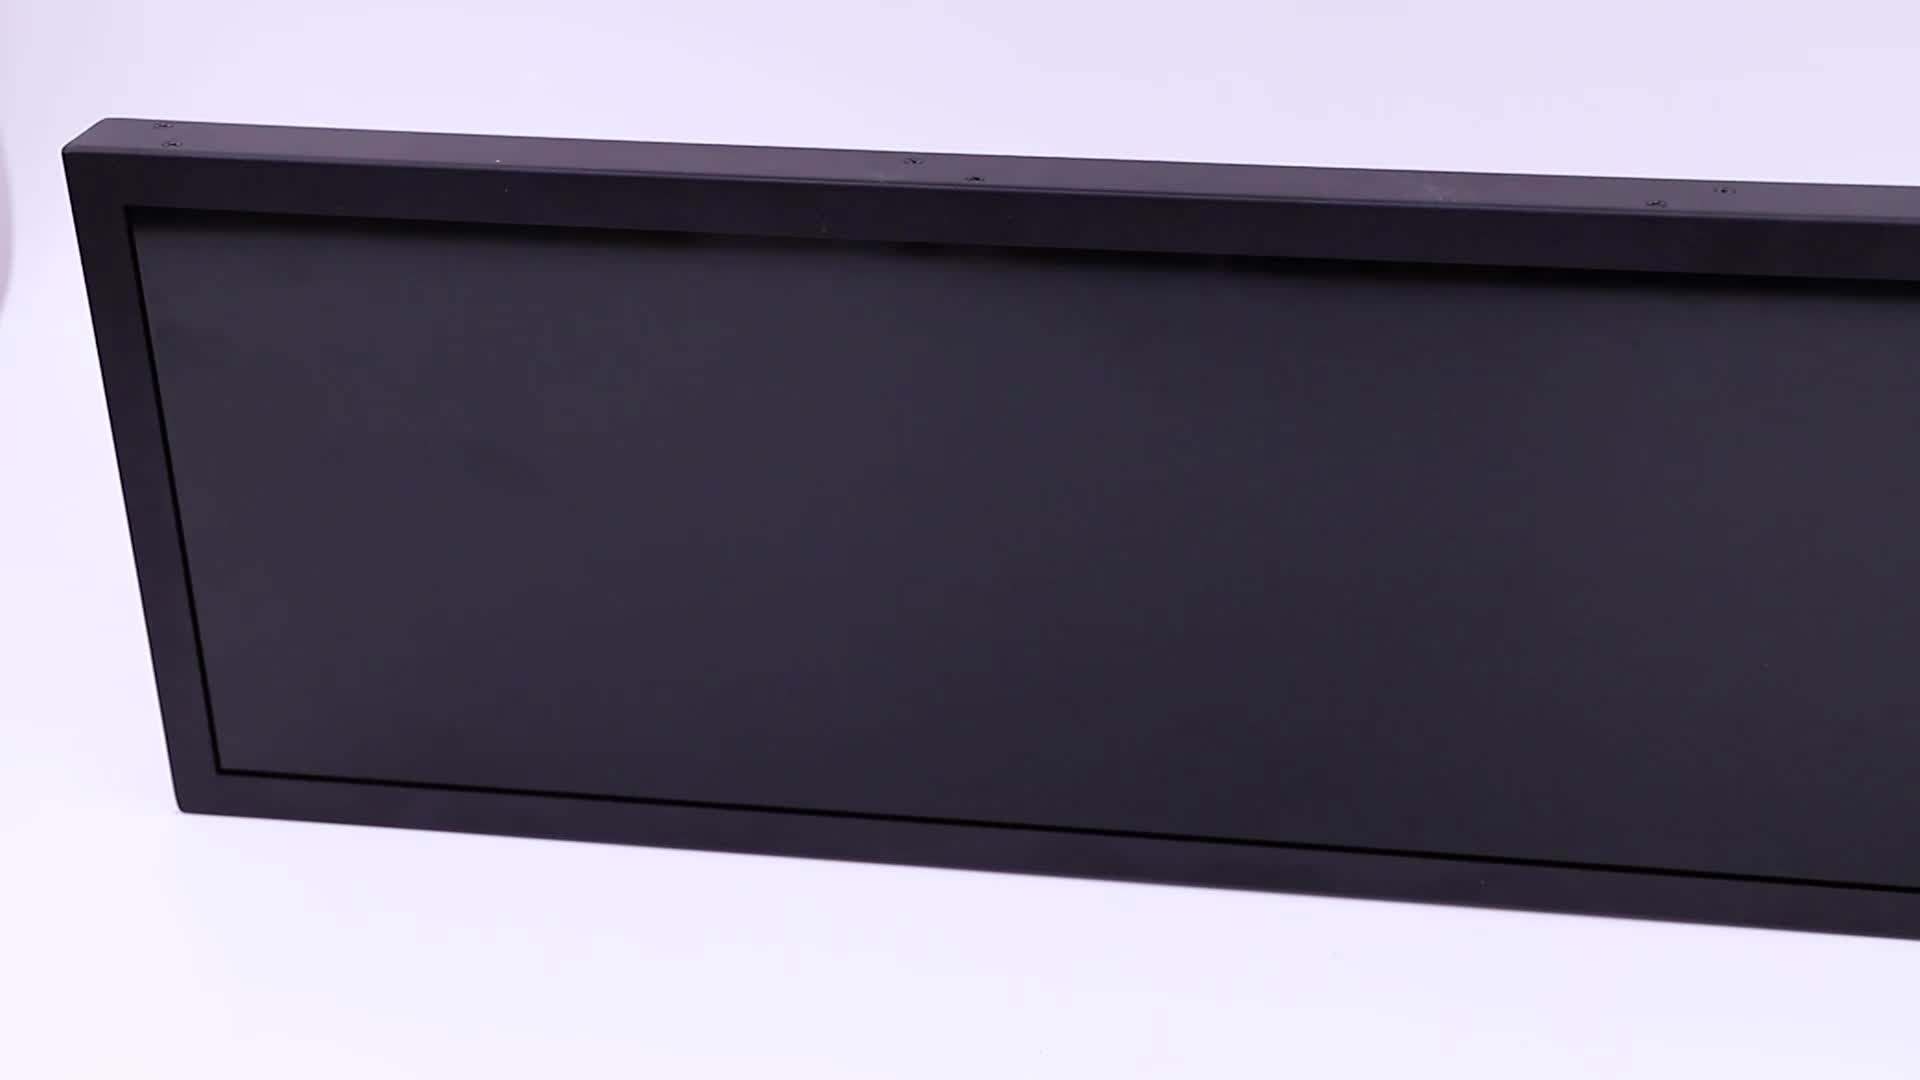 Android OS Bus Wall Mount 29 Inch Passenger TFT LCD Display for Infotainment System